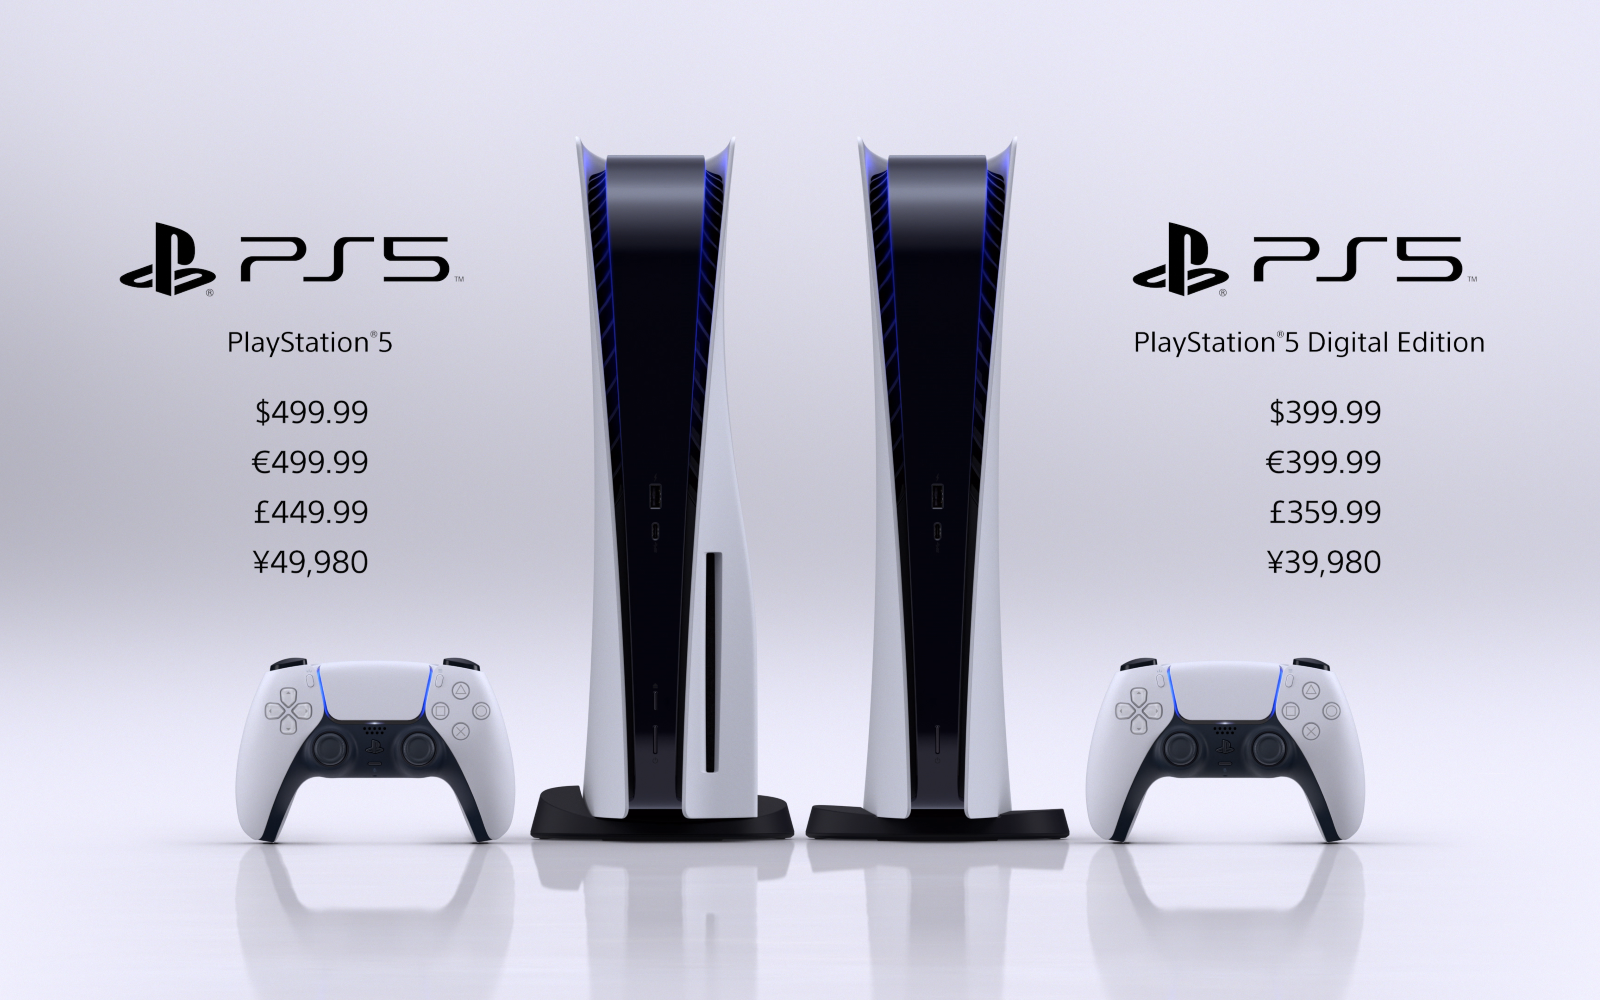 PlayStation 5 Launching From November 12th At €399 & €499. Here's All The Details From The PS5 Showcase